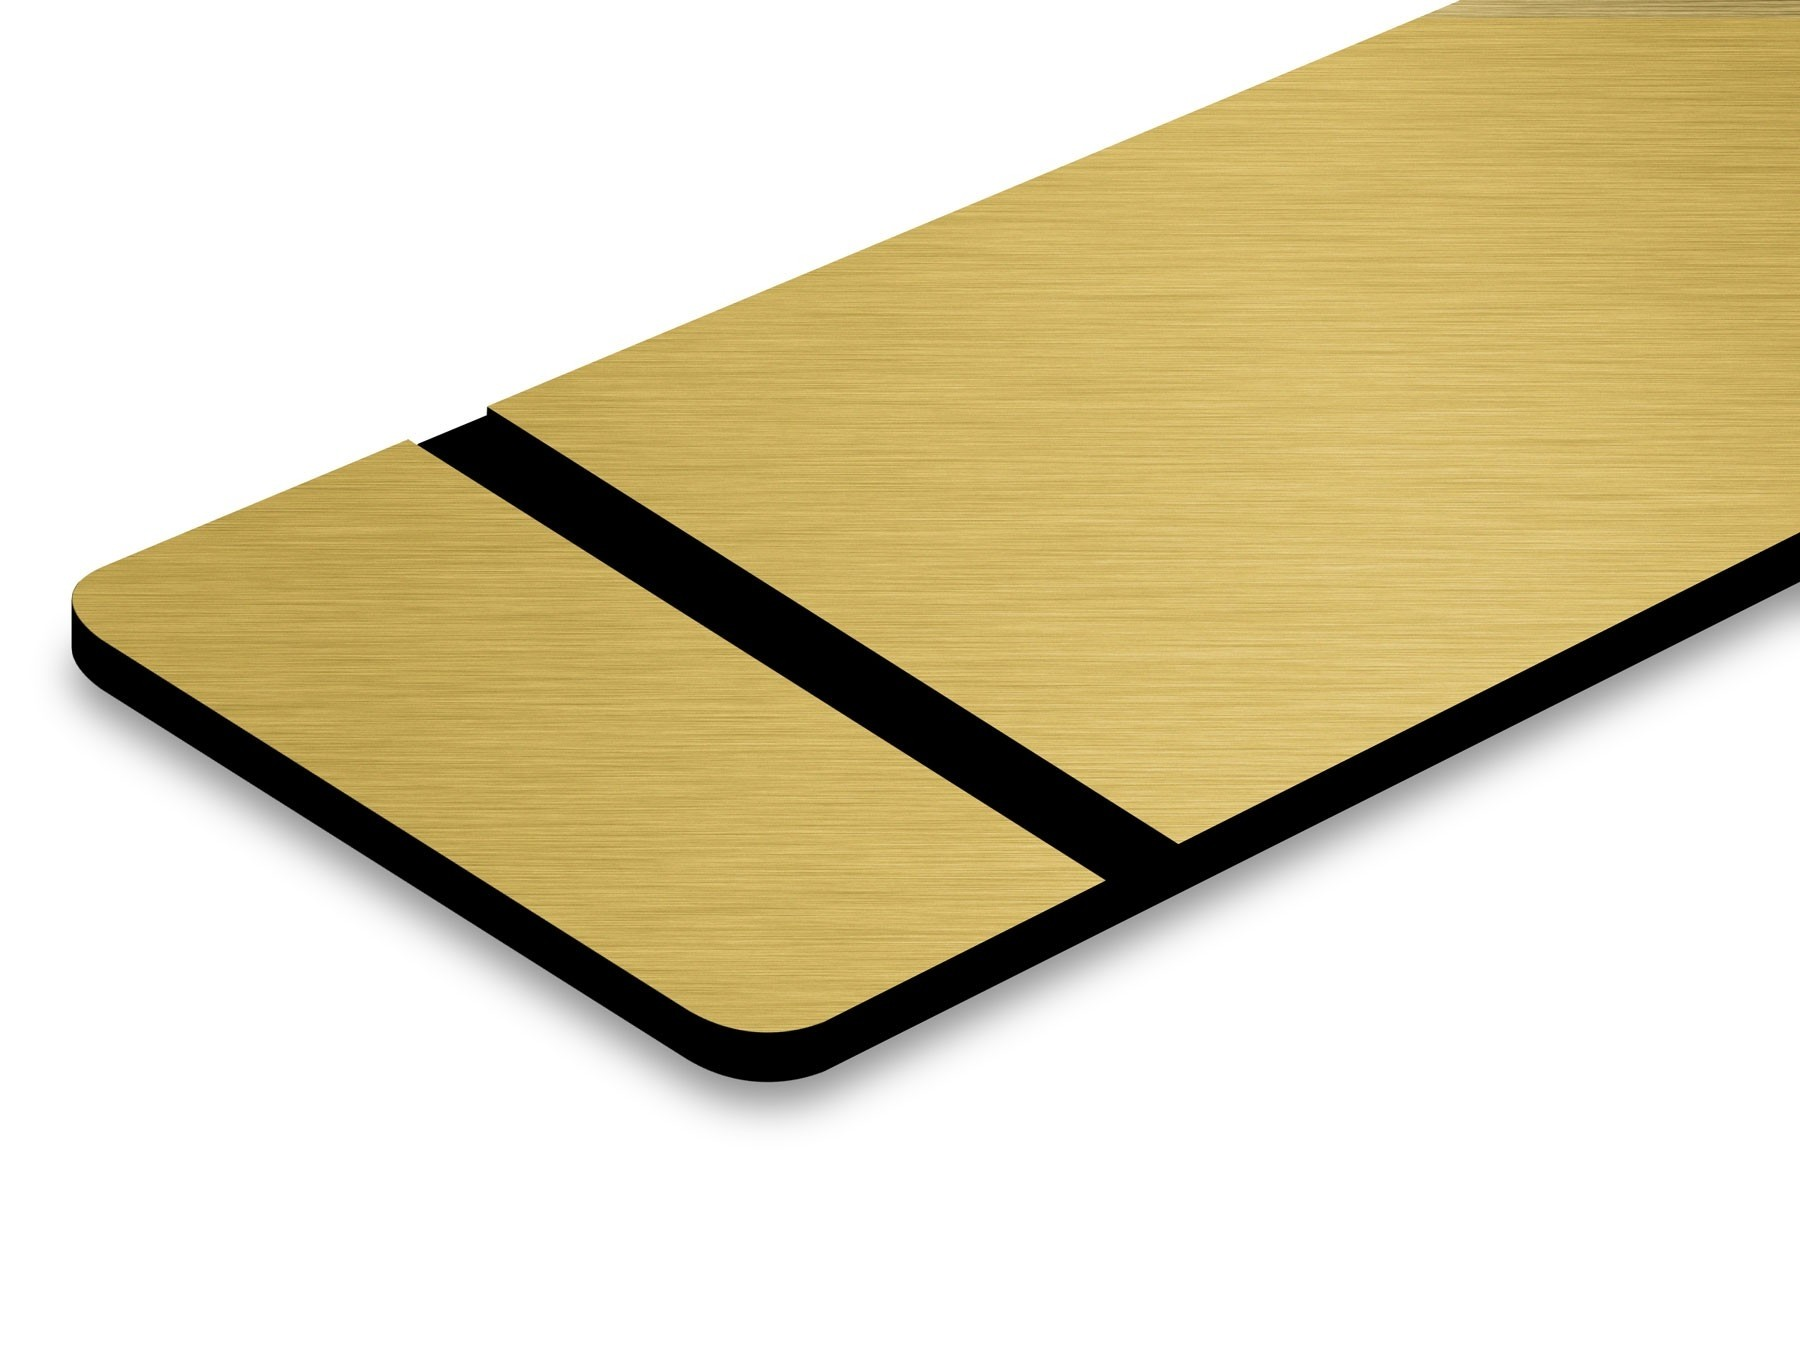 TroLase Metallic, Brushed Gold/Black, 2ply, 0.8 mm